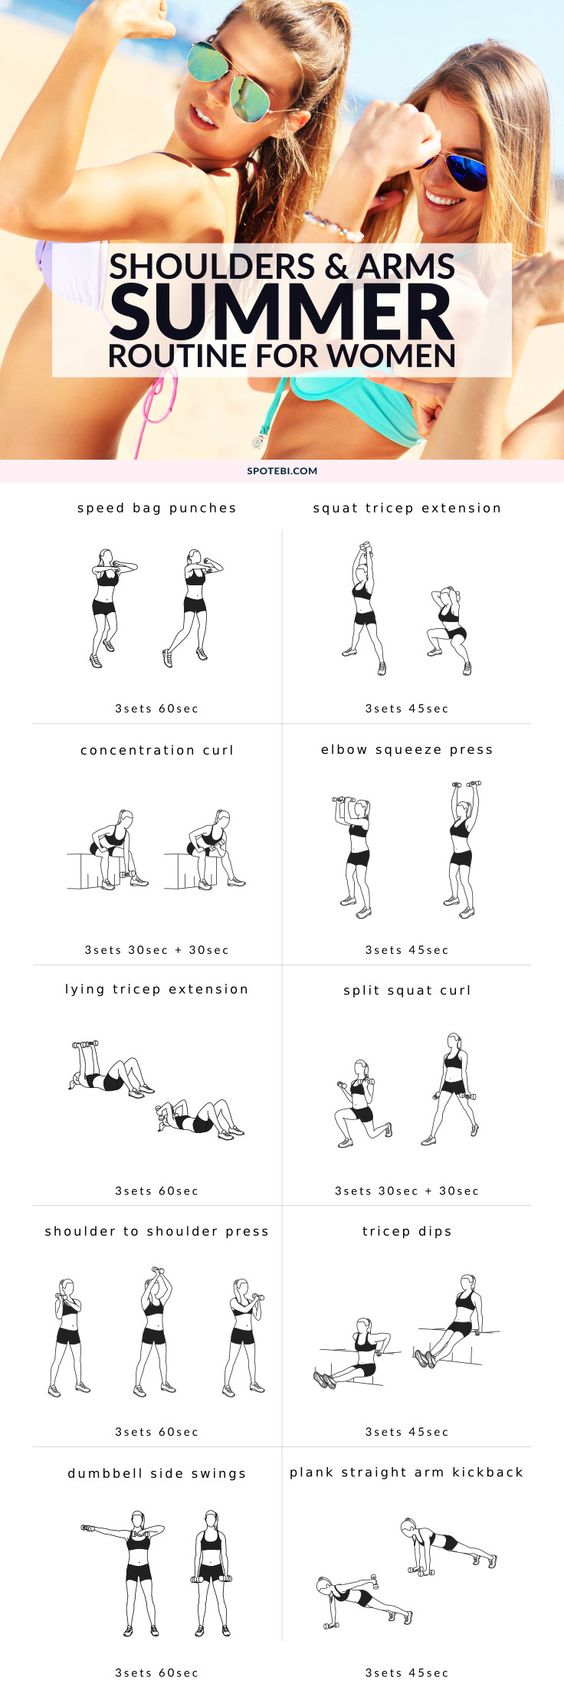 Circuit Style Workout 23 Fat Burning Bikini Arm Workouts That Will Shape Your Arms Sculpted